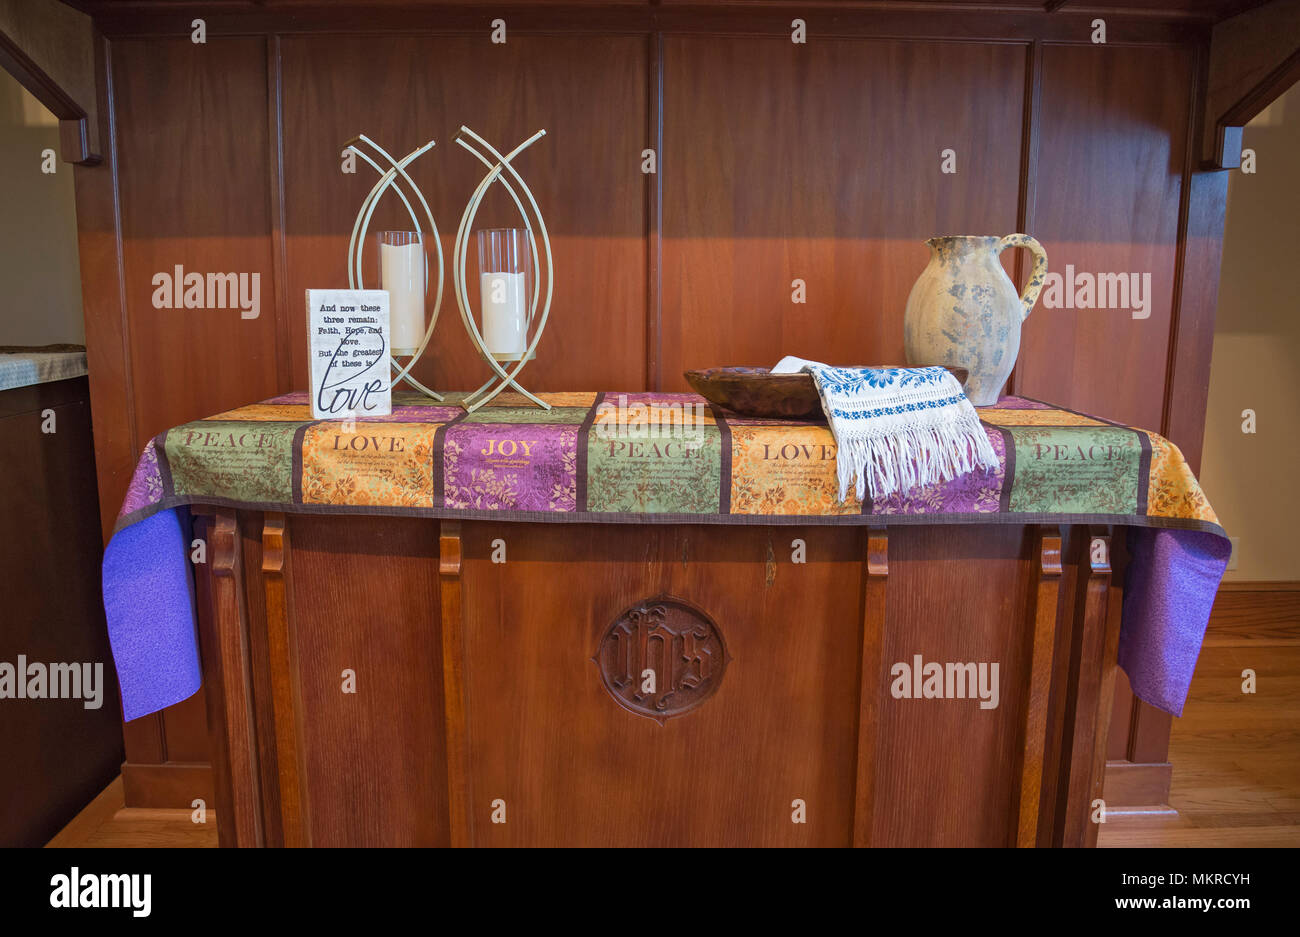 communion table photos & communion table images - alamy